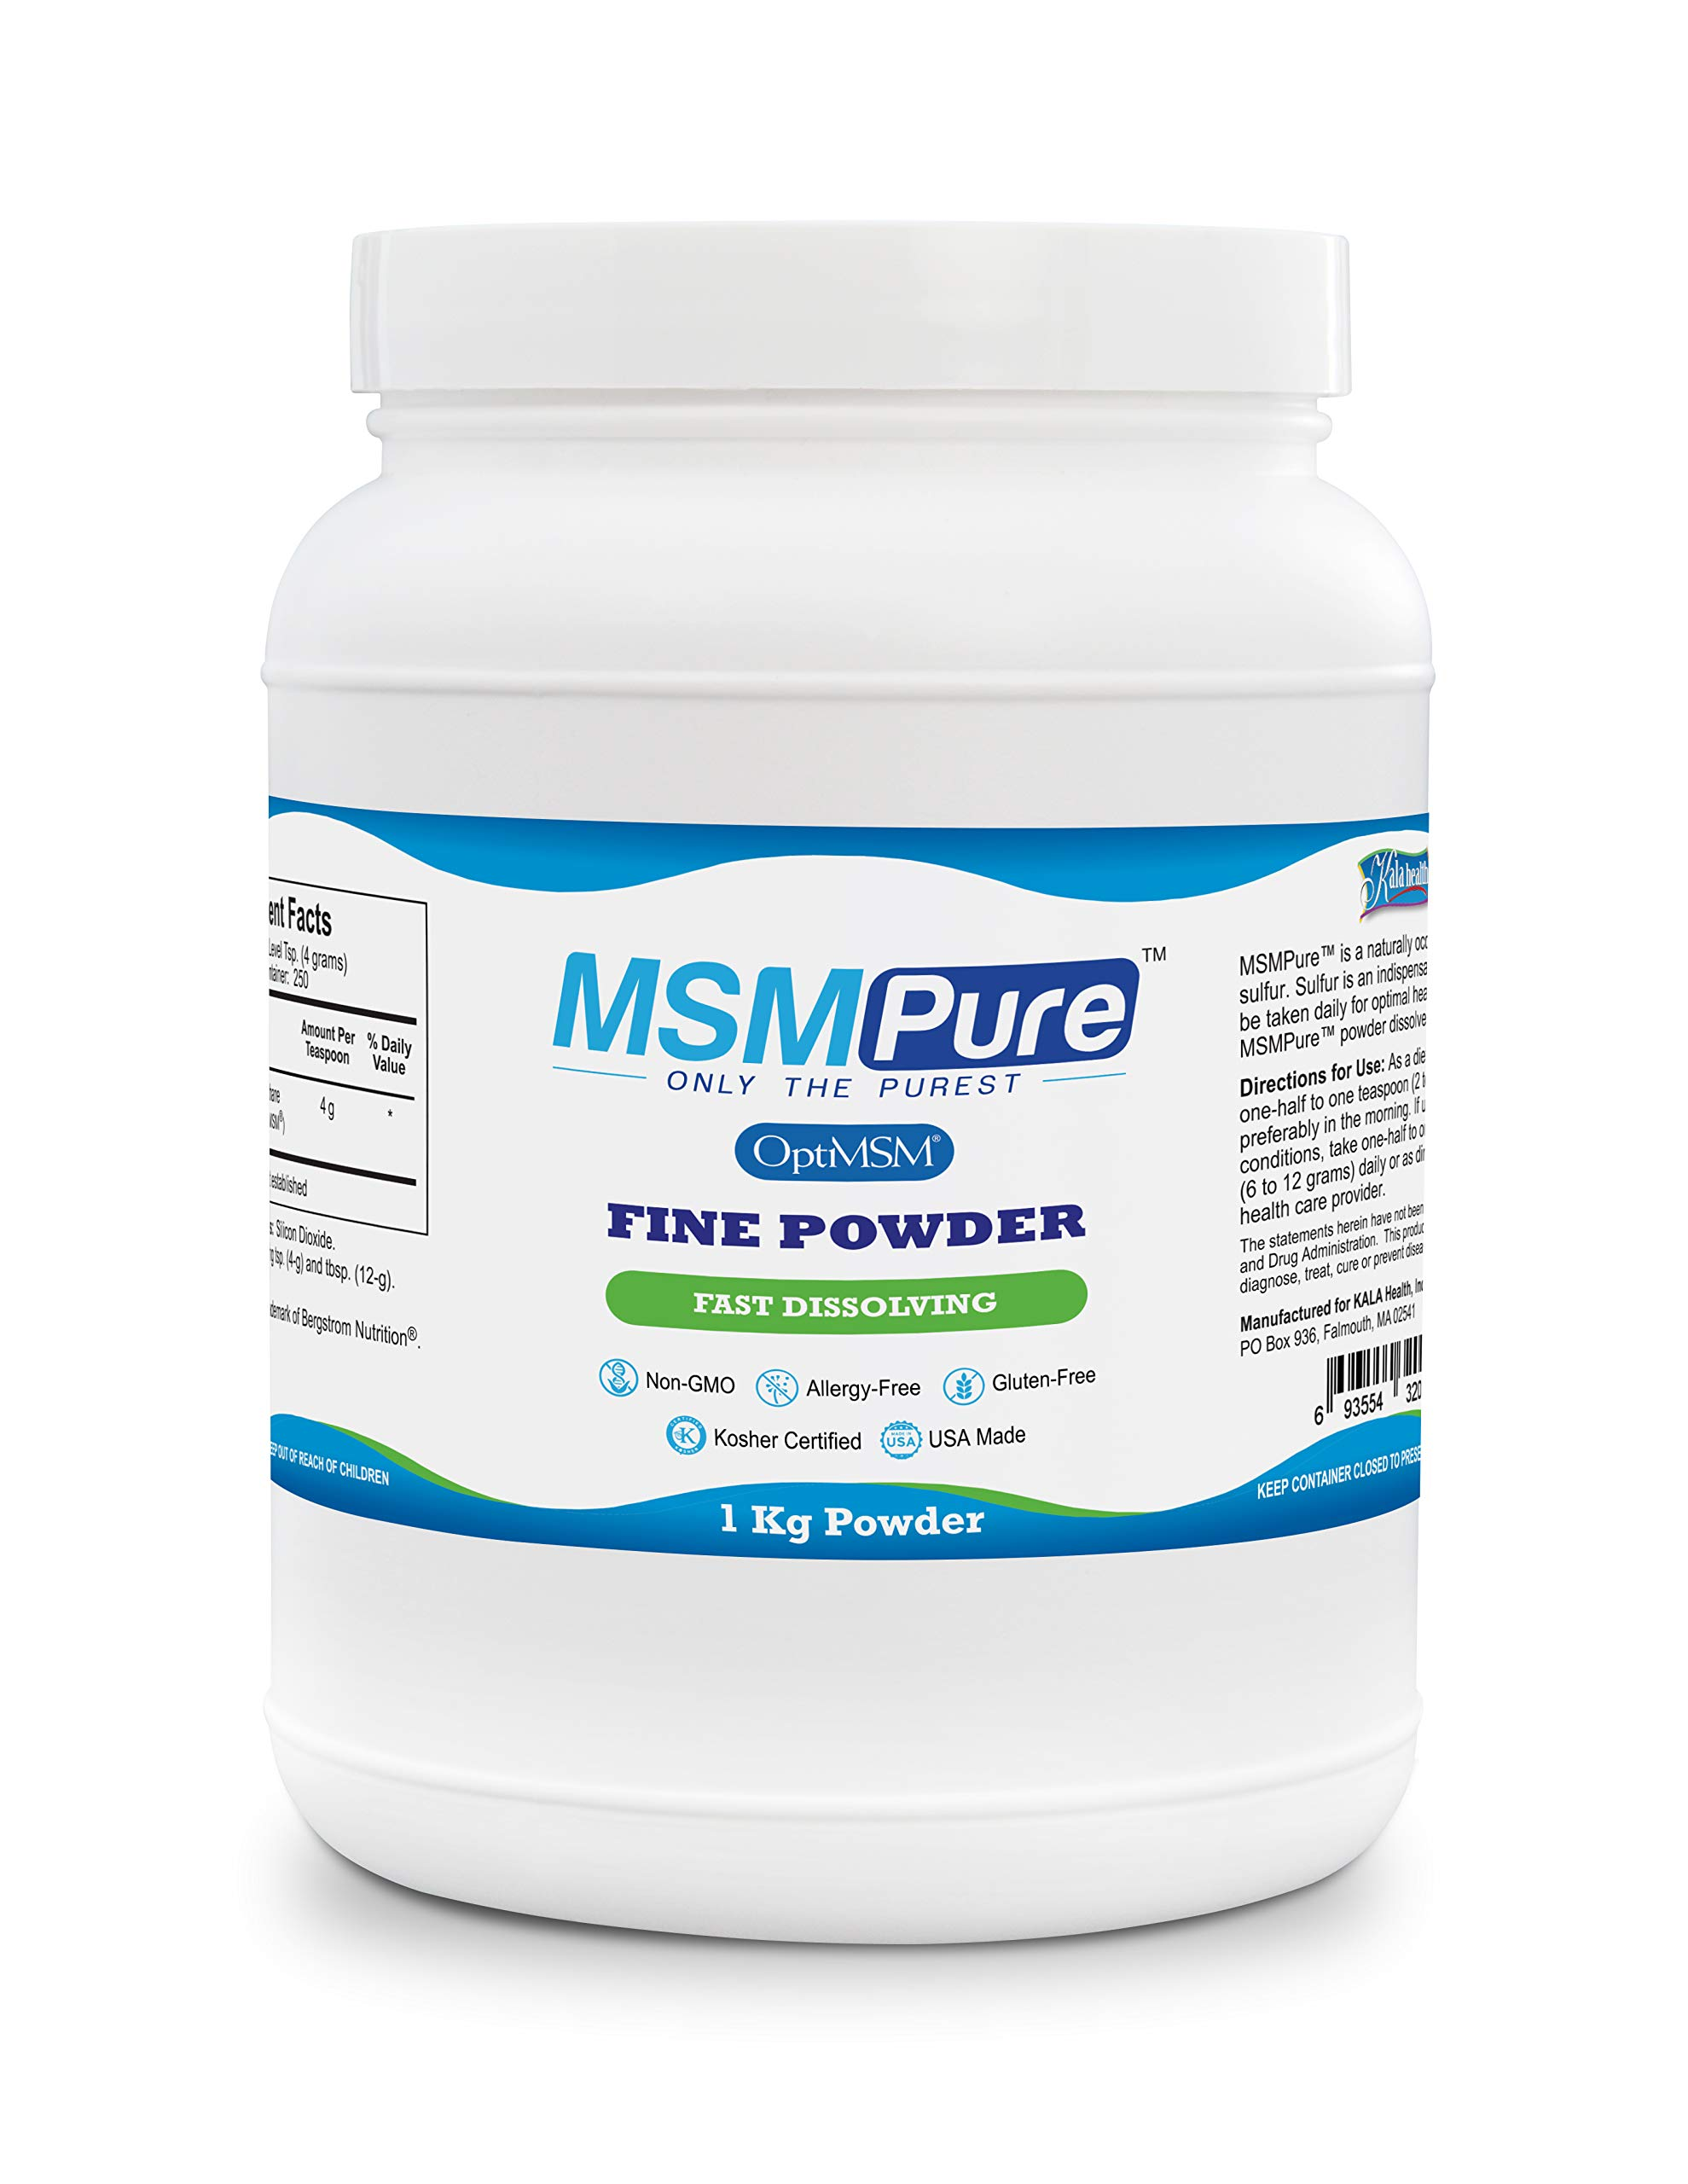 Kala Health MSMPure Fine Powder, Fast Dissolving Crystals, 2.2 lbs, Pure MSM Organic Sulfur Supplement for Joints, Muscle Soreness, Immune Support and Beauty, Skin,Hair & Nails. Made in USA